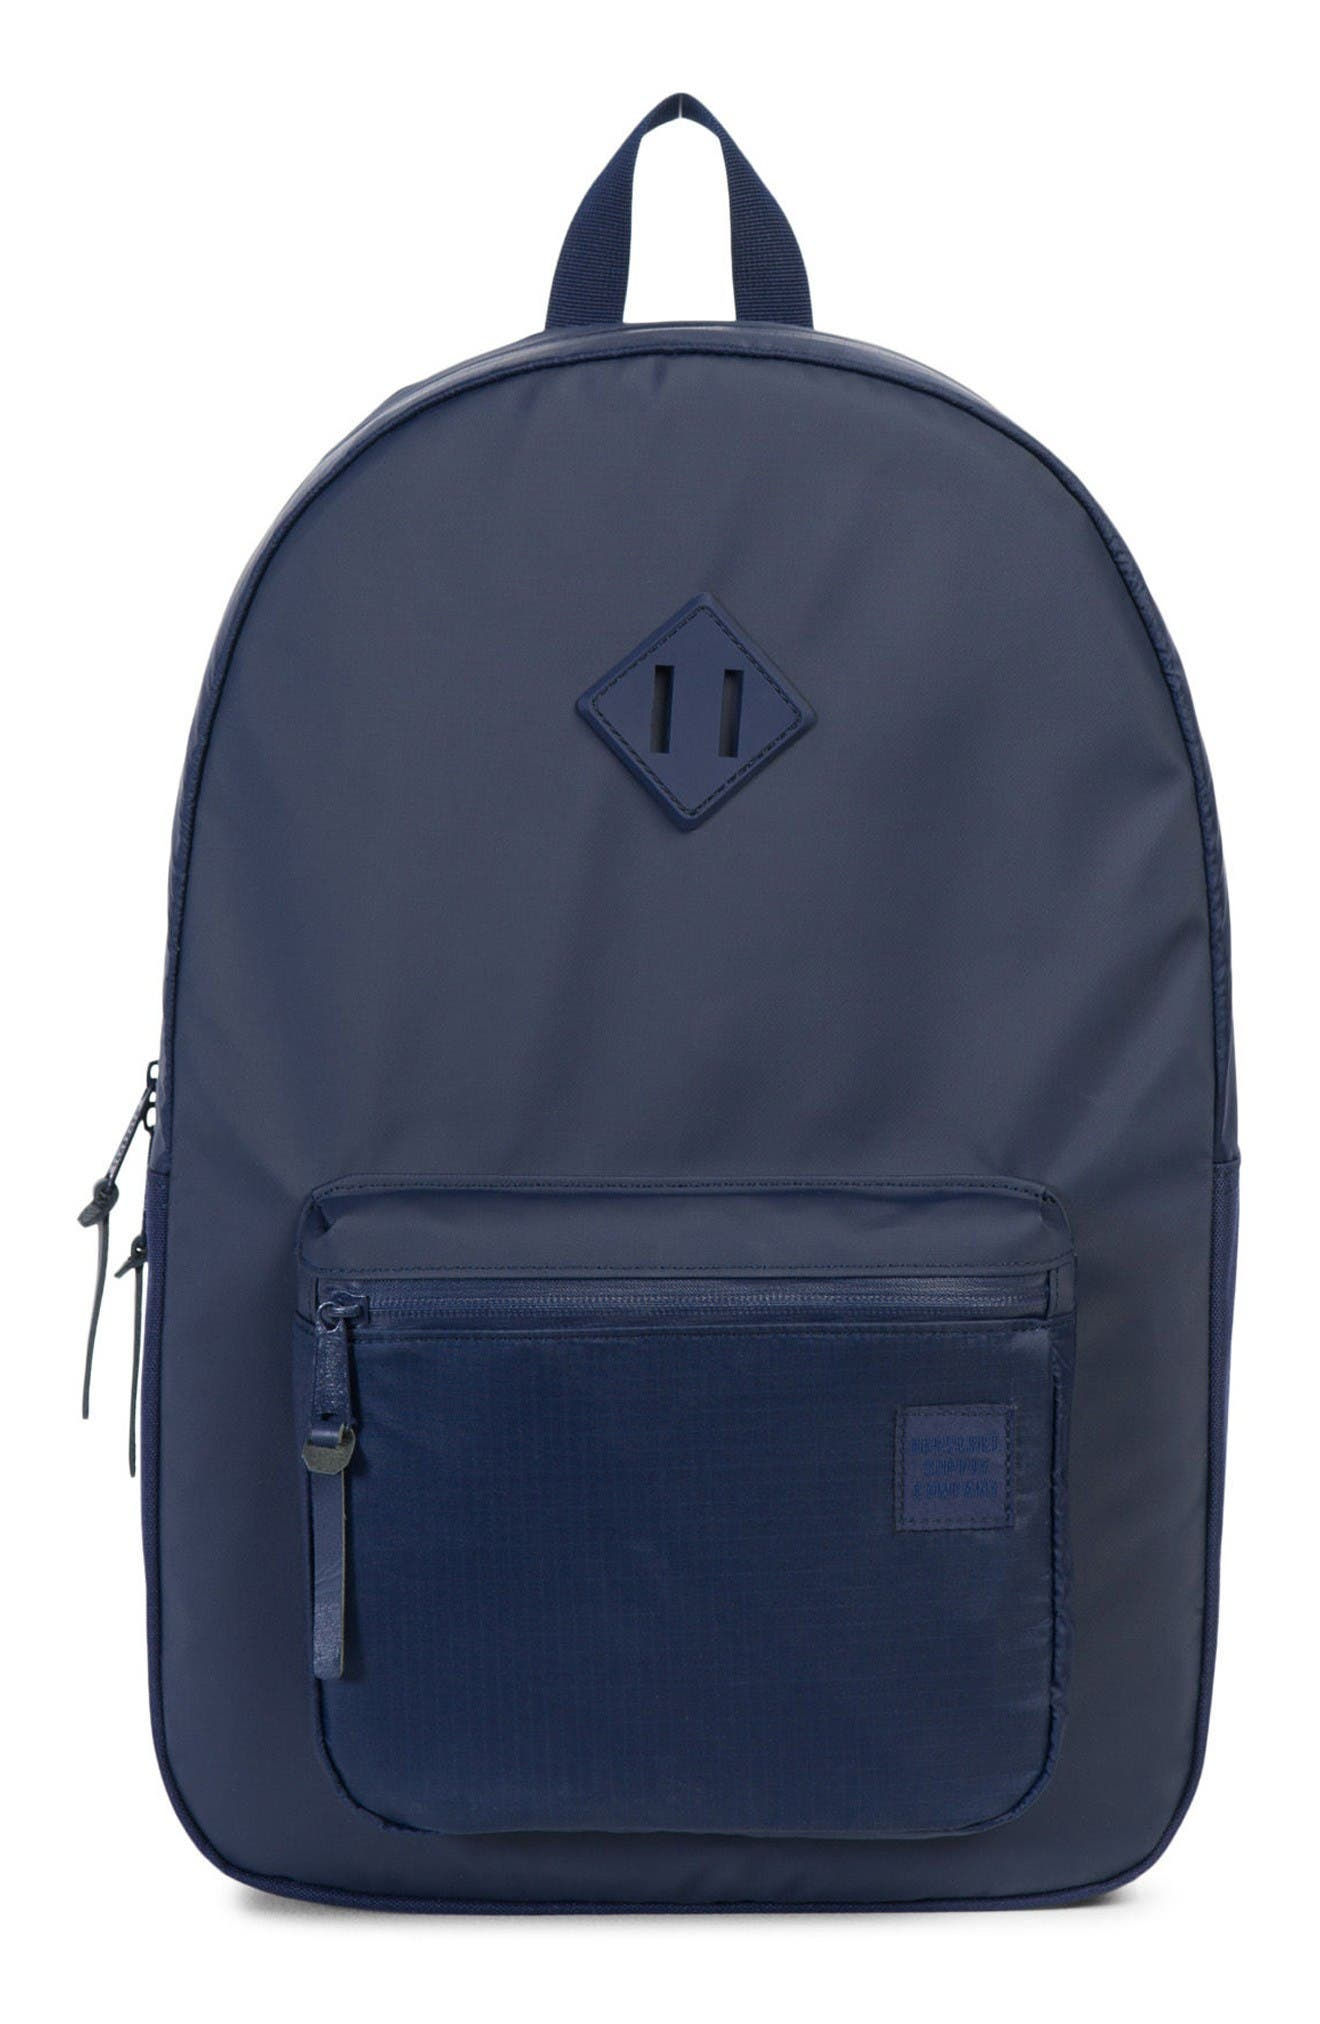 Herschel Supply Co. Ruskin Studio Backpack